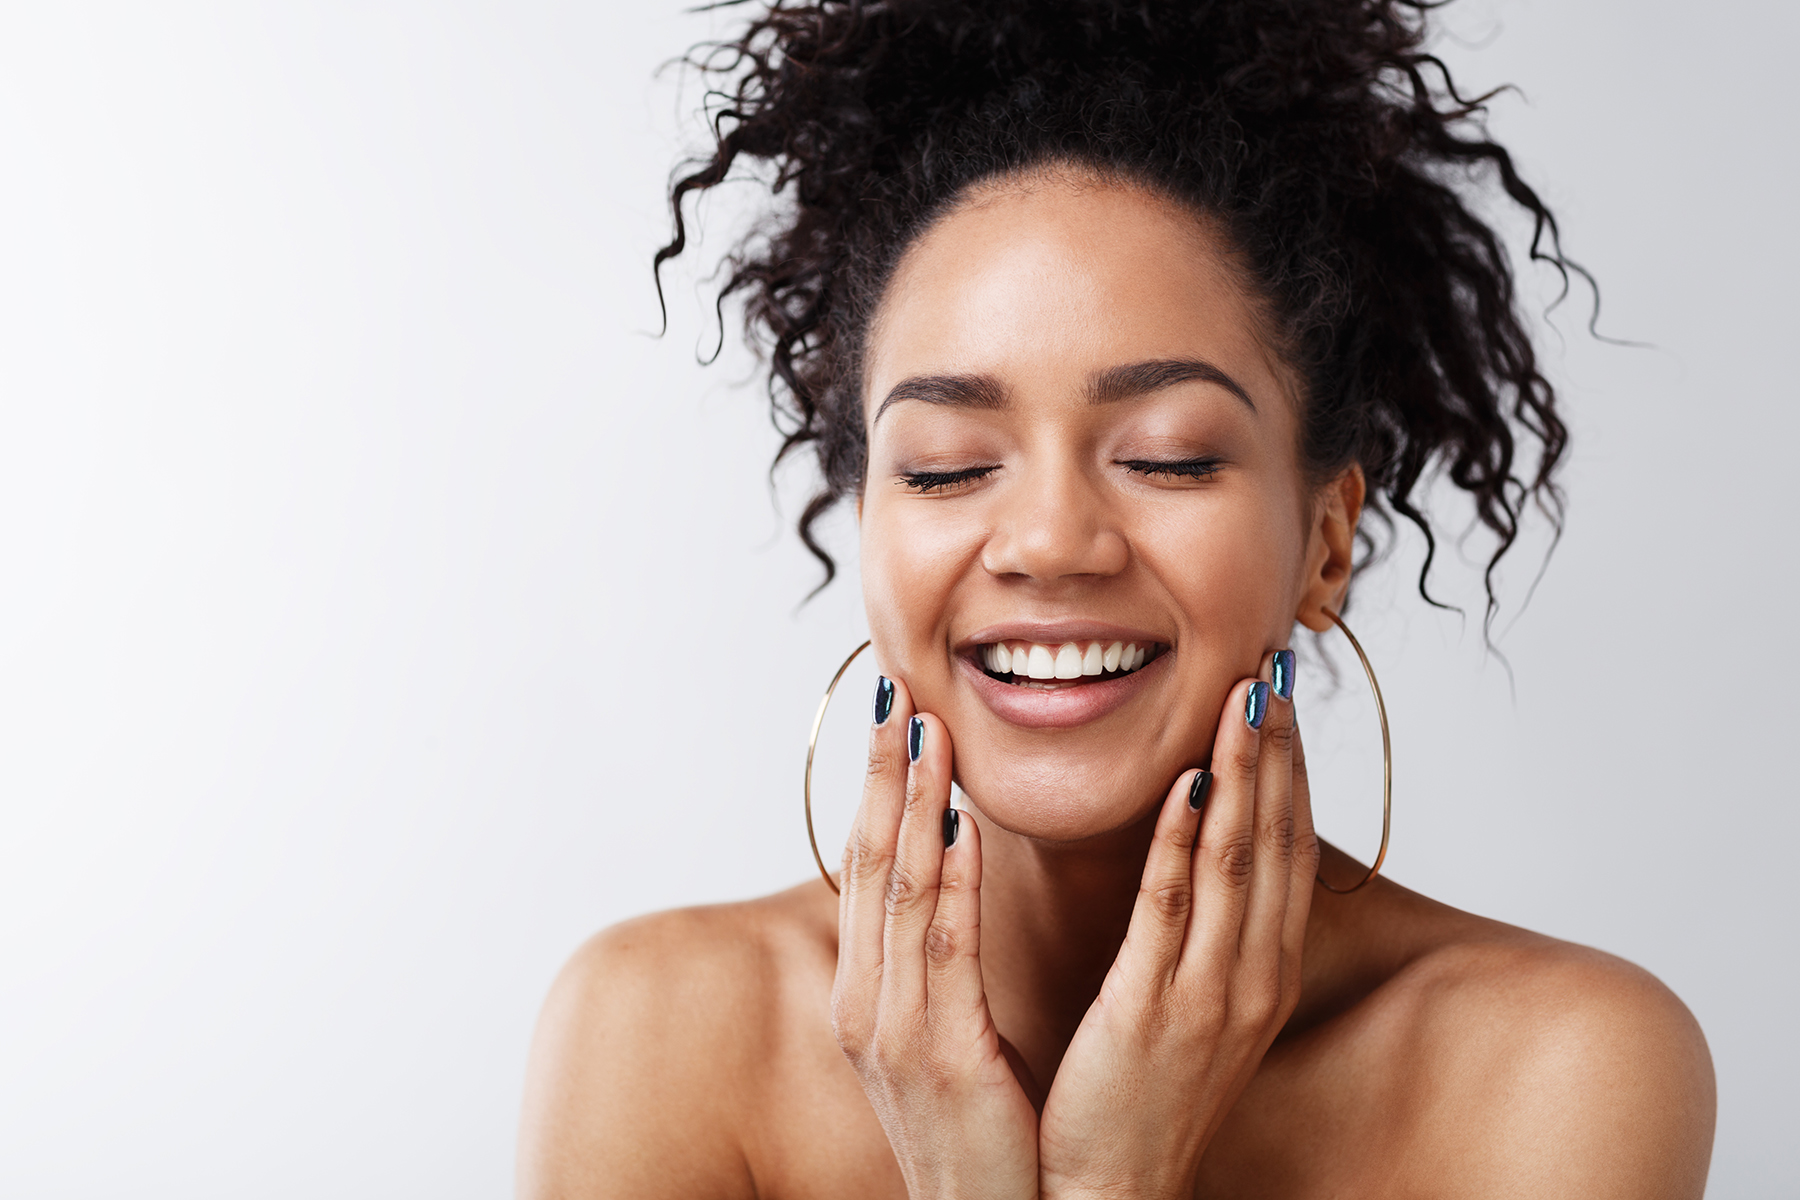 Happy woman with healthy skin